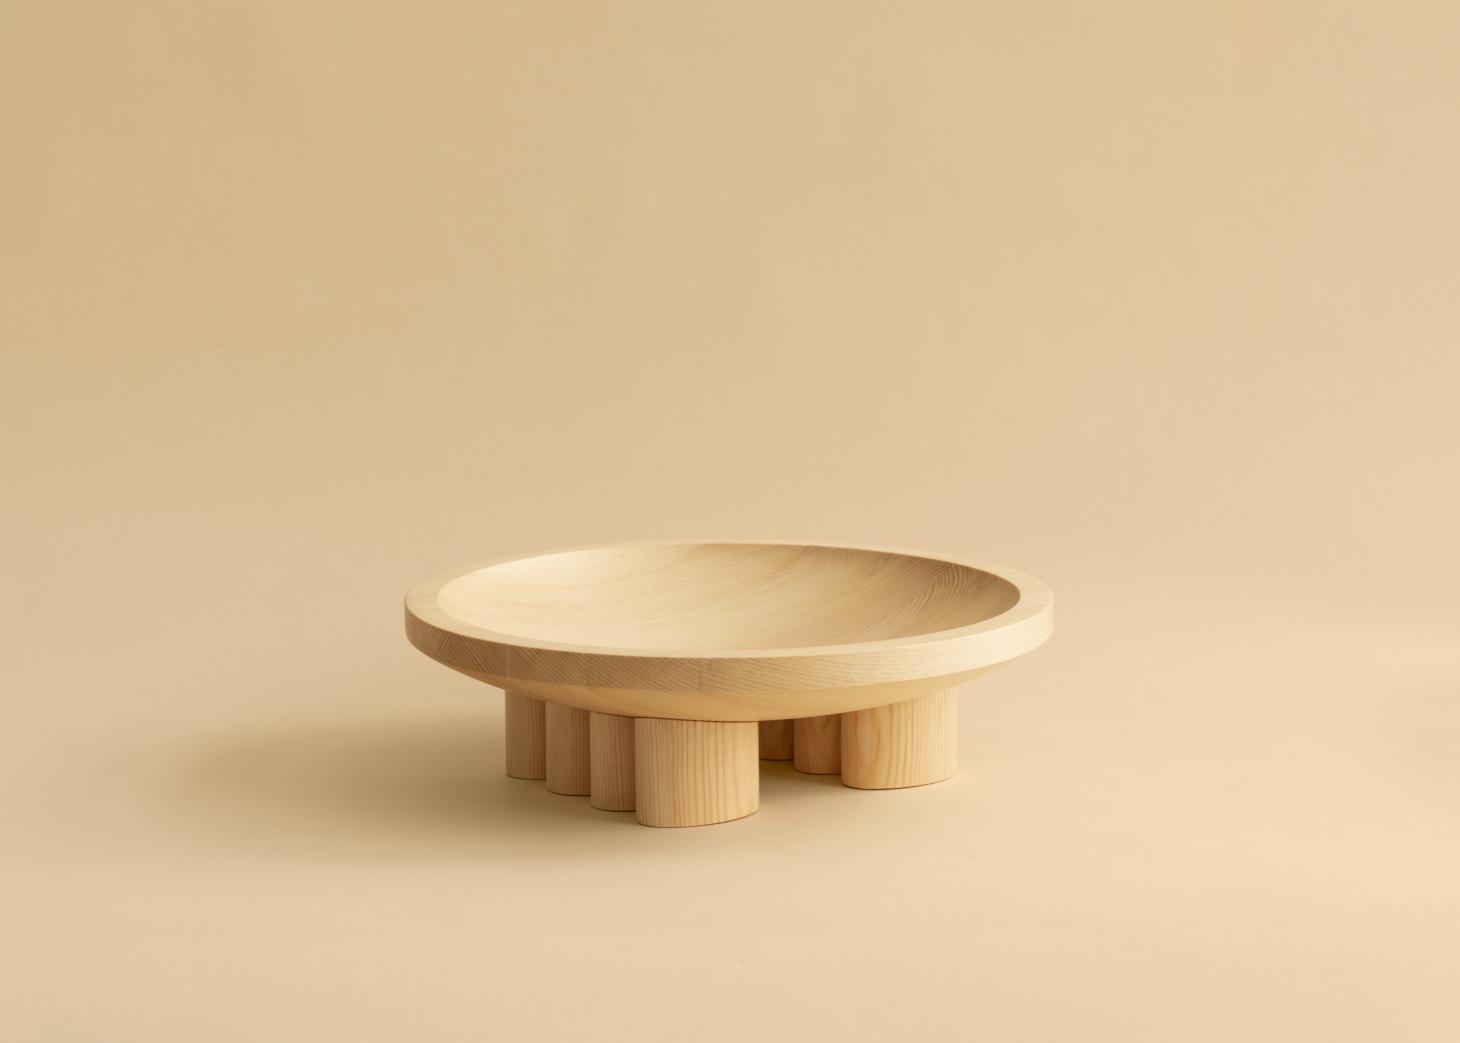 Vaarnii wooden bowl by Mac Collins on pale background